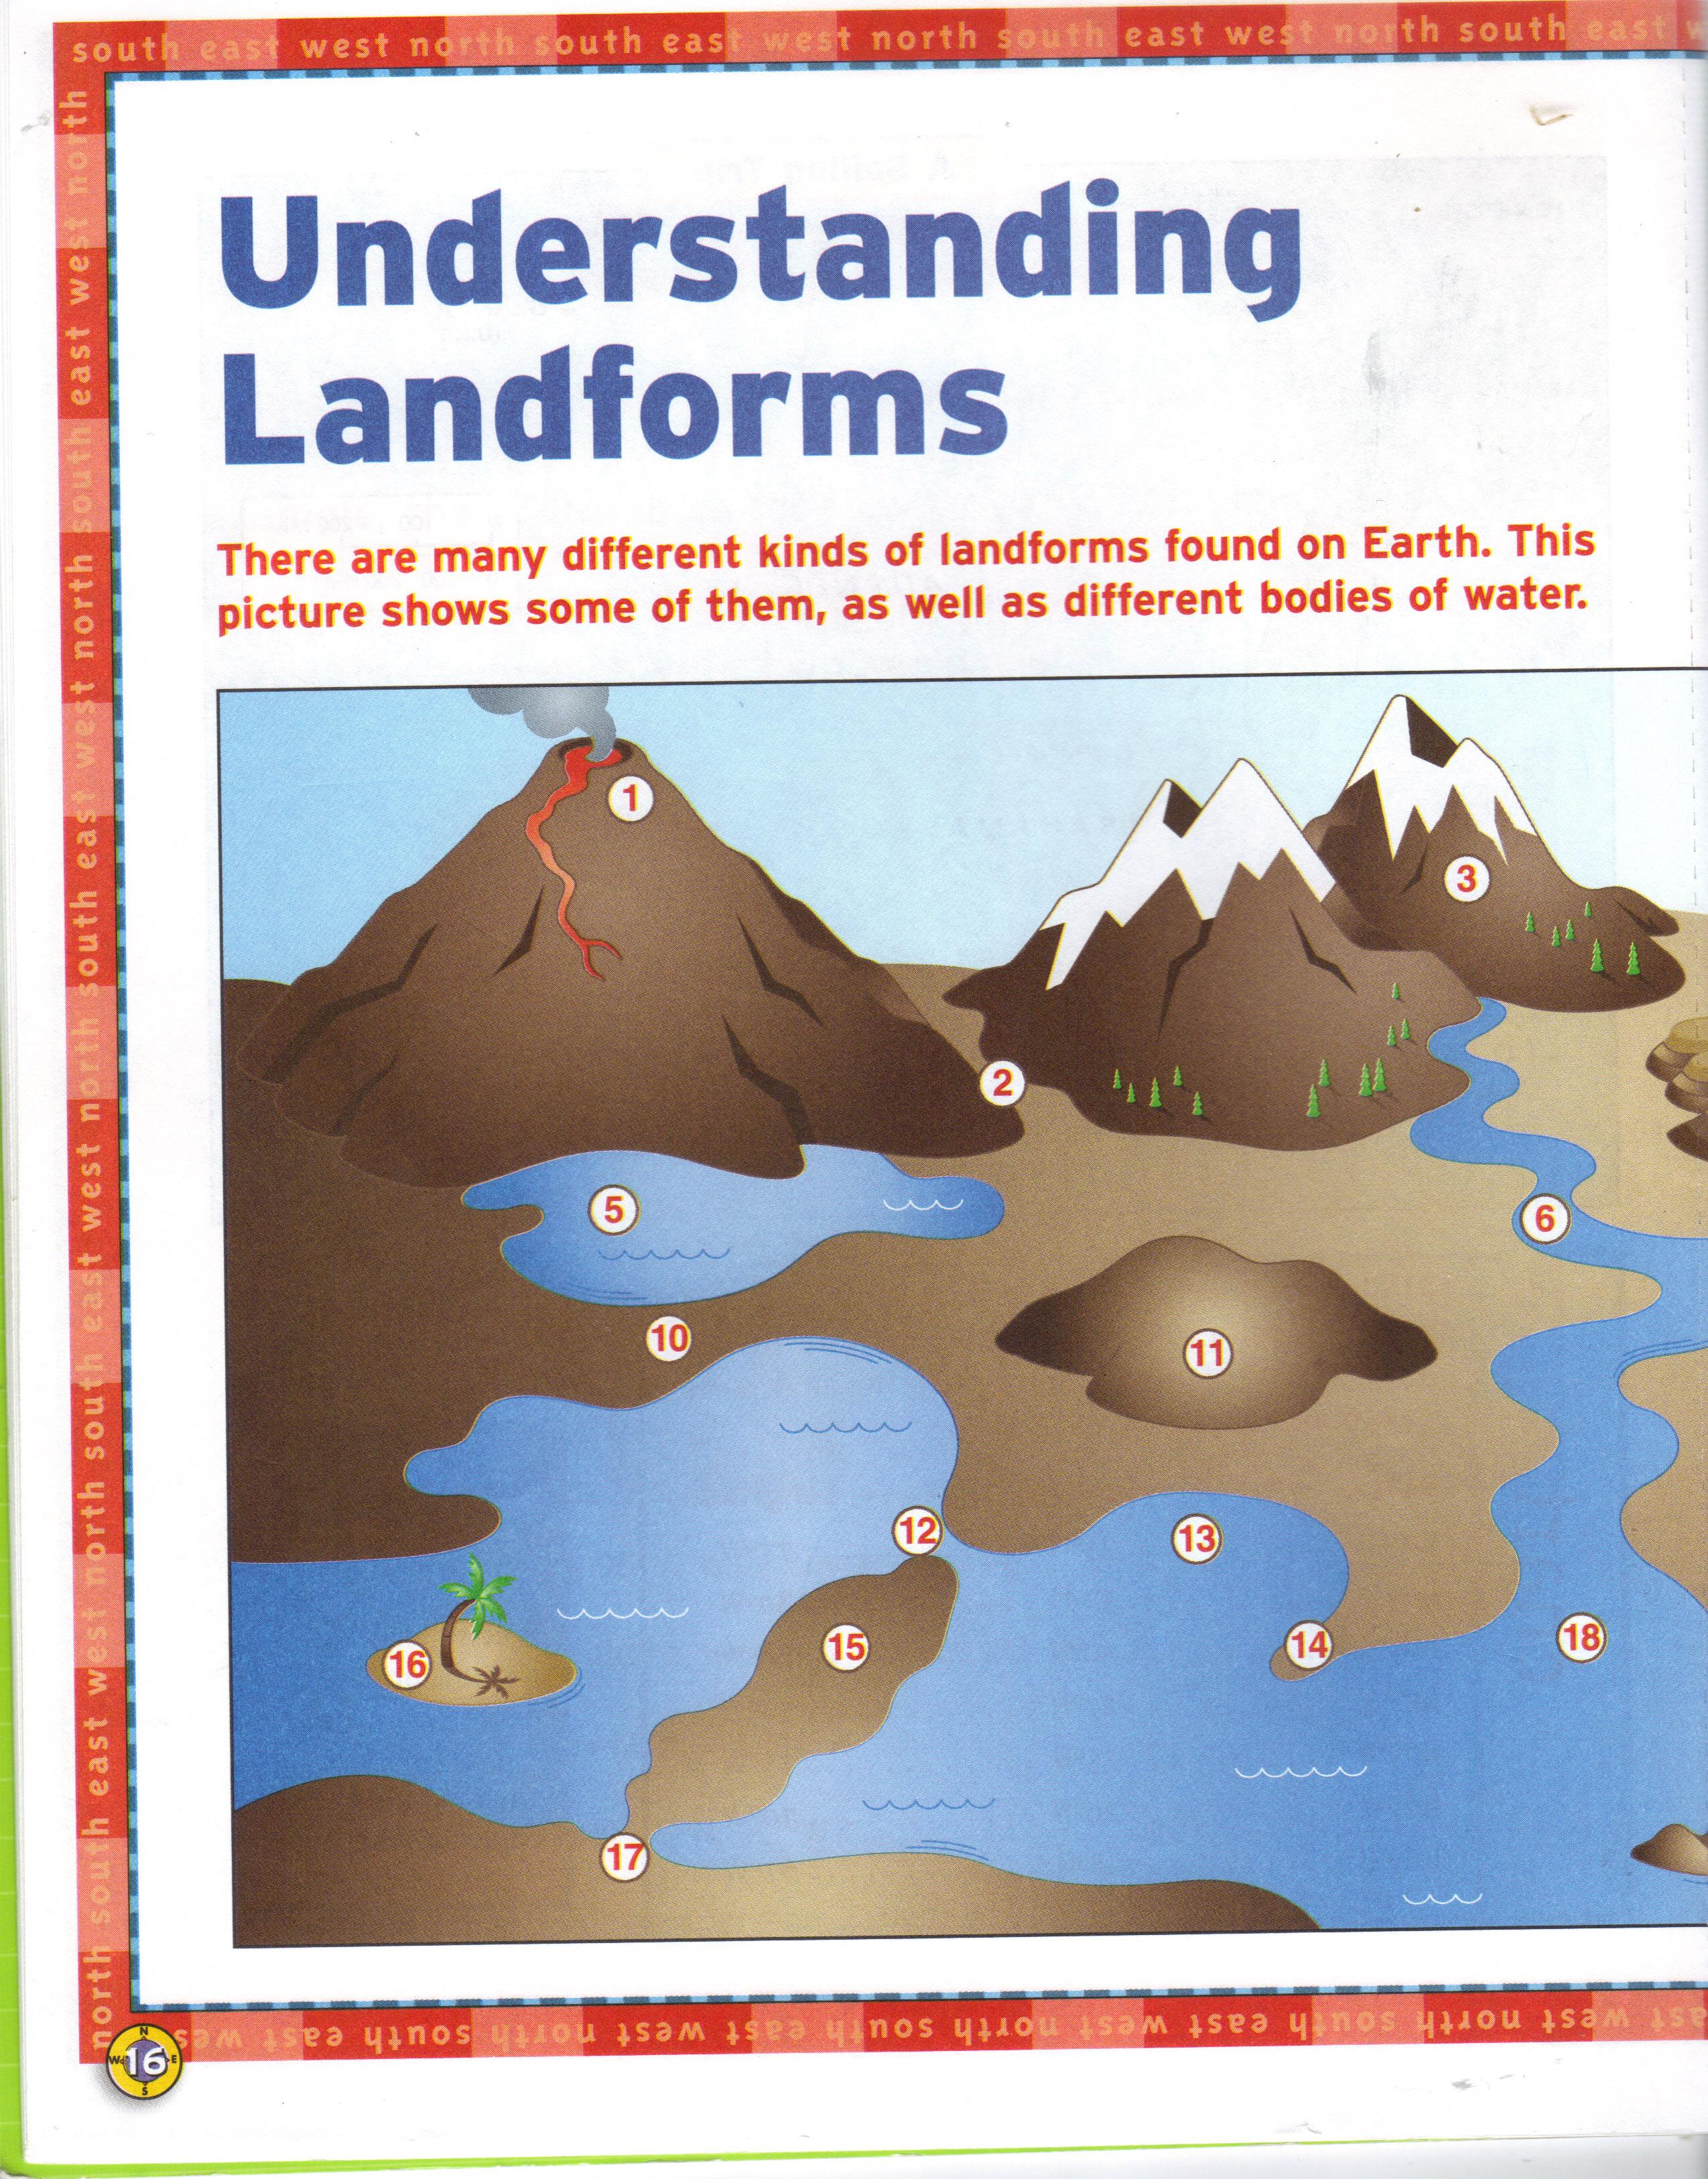 worksheet Landform Worksheet ditoddfifthgrade landform worksheets worksheets